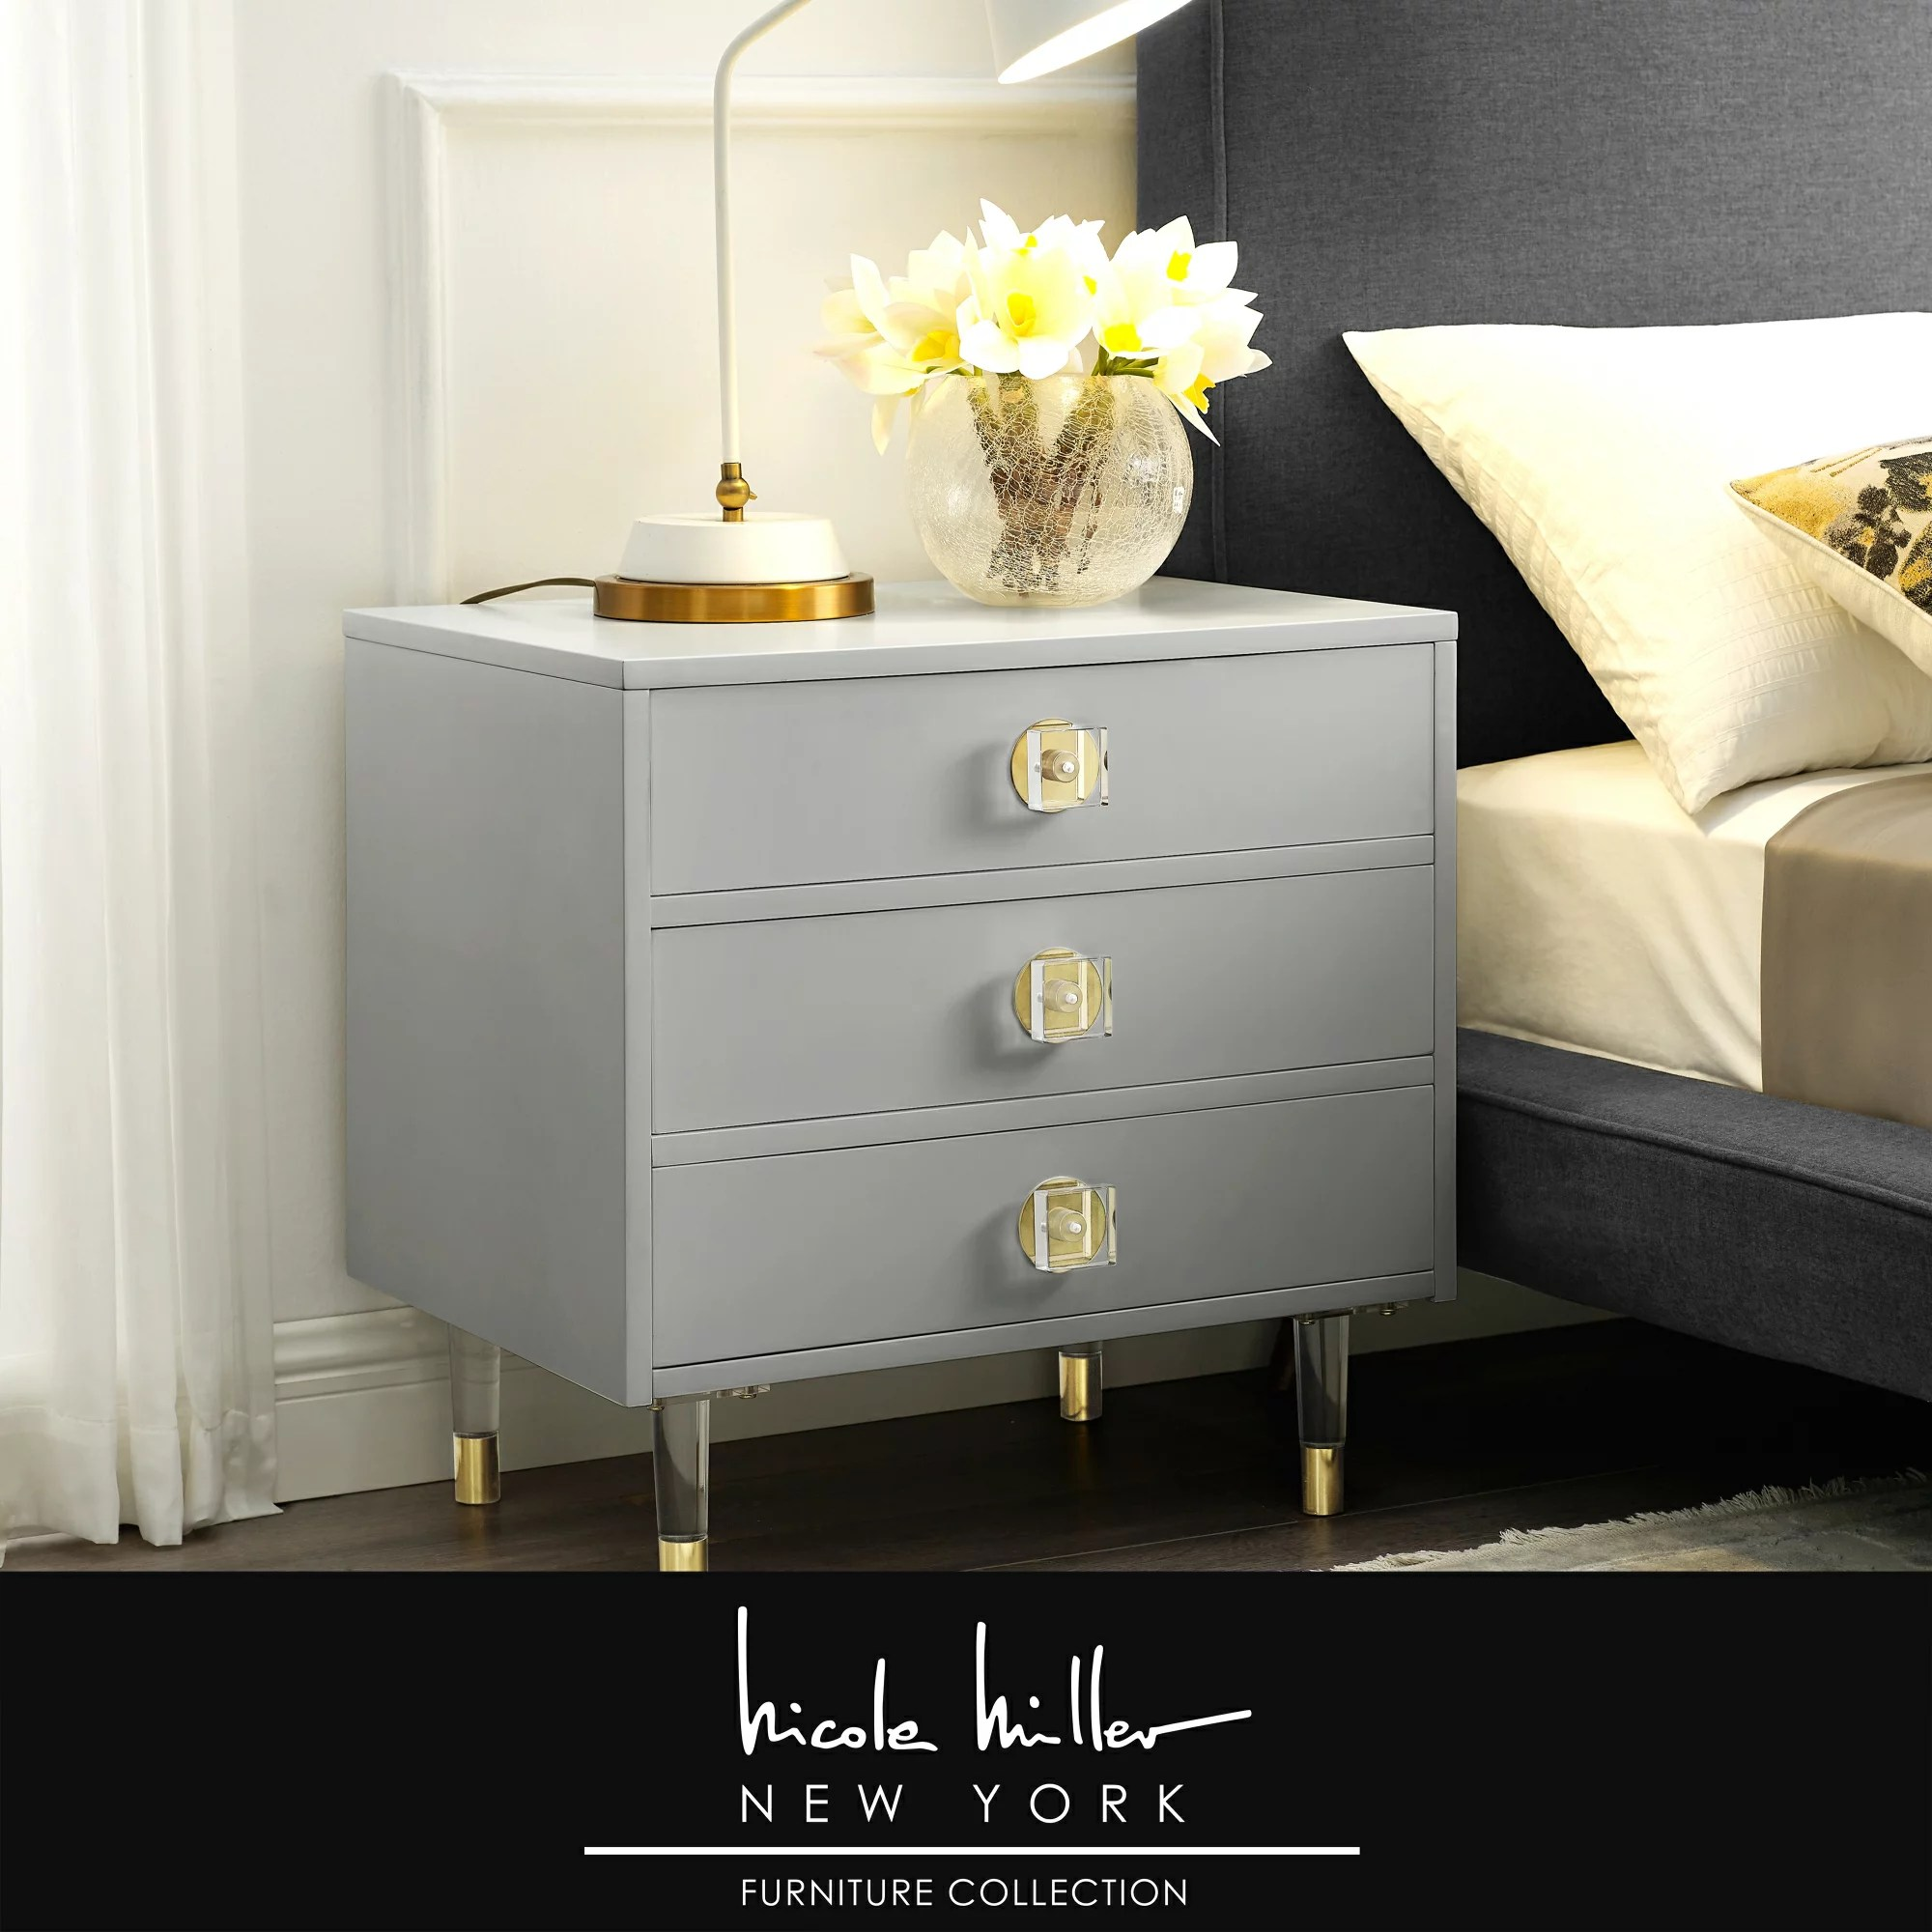 Nicole Miller Dionysio Nightstand 3 Drawers Acrylic Knob And Leg Metal Accents High Gloss